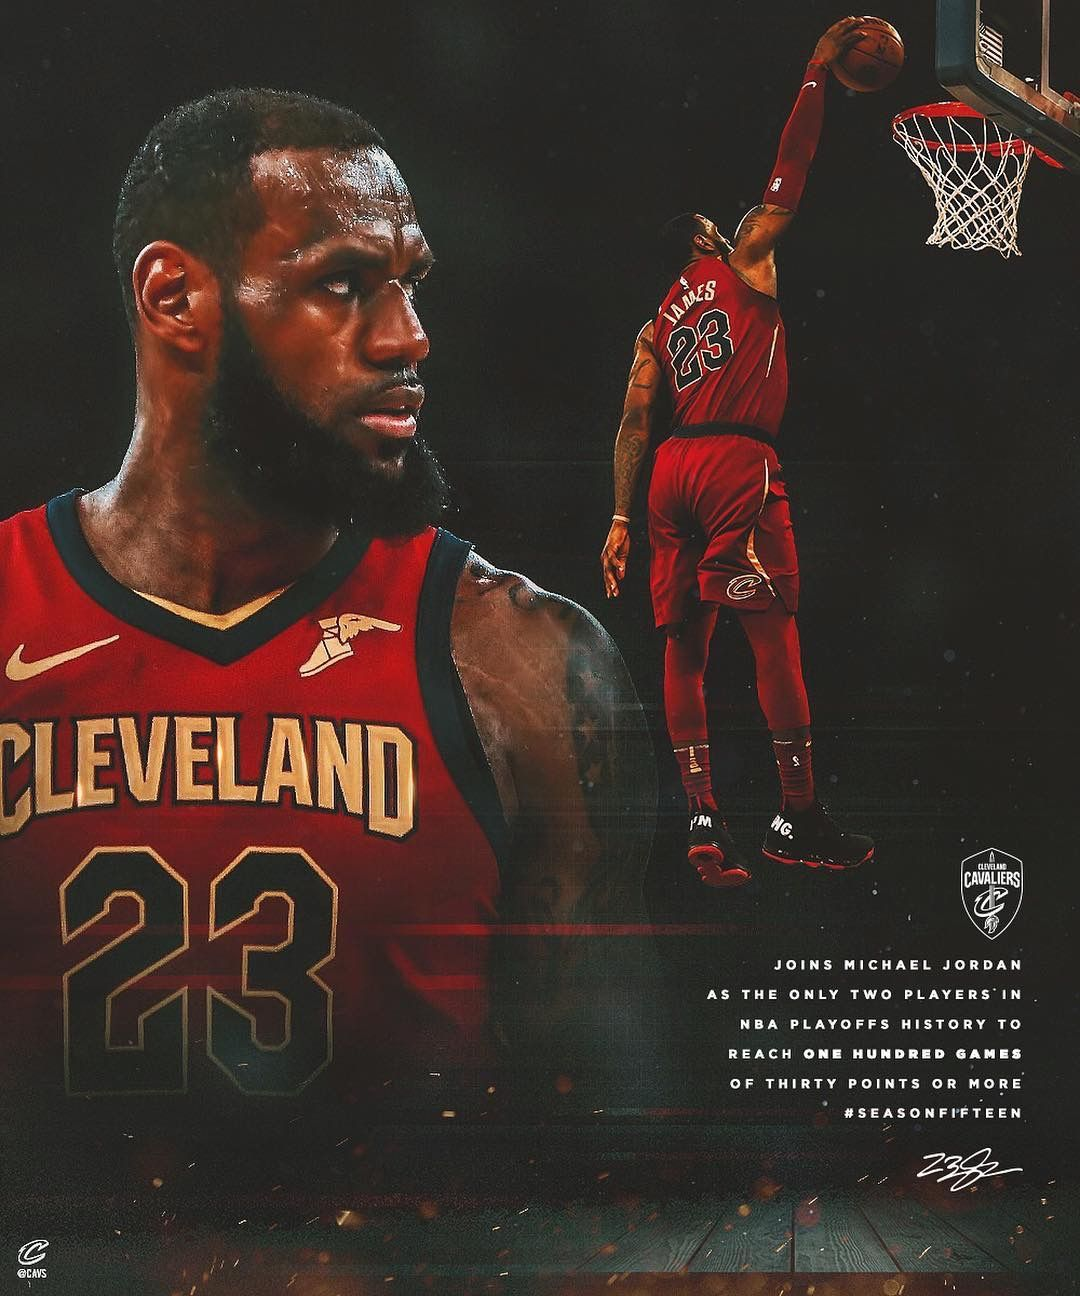 Pin on Cleveland Cavaliers